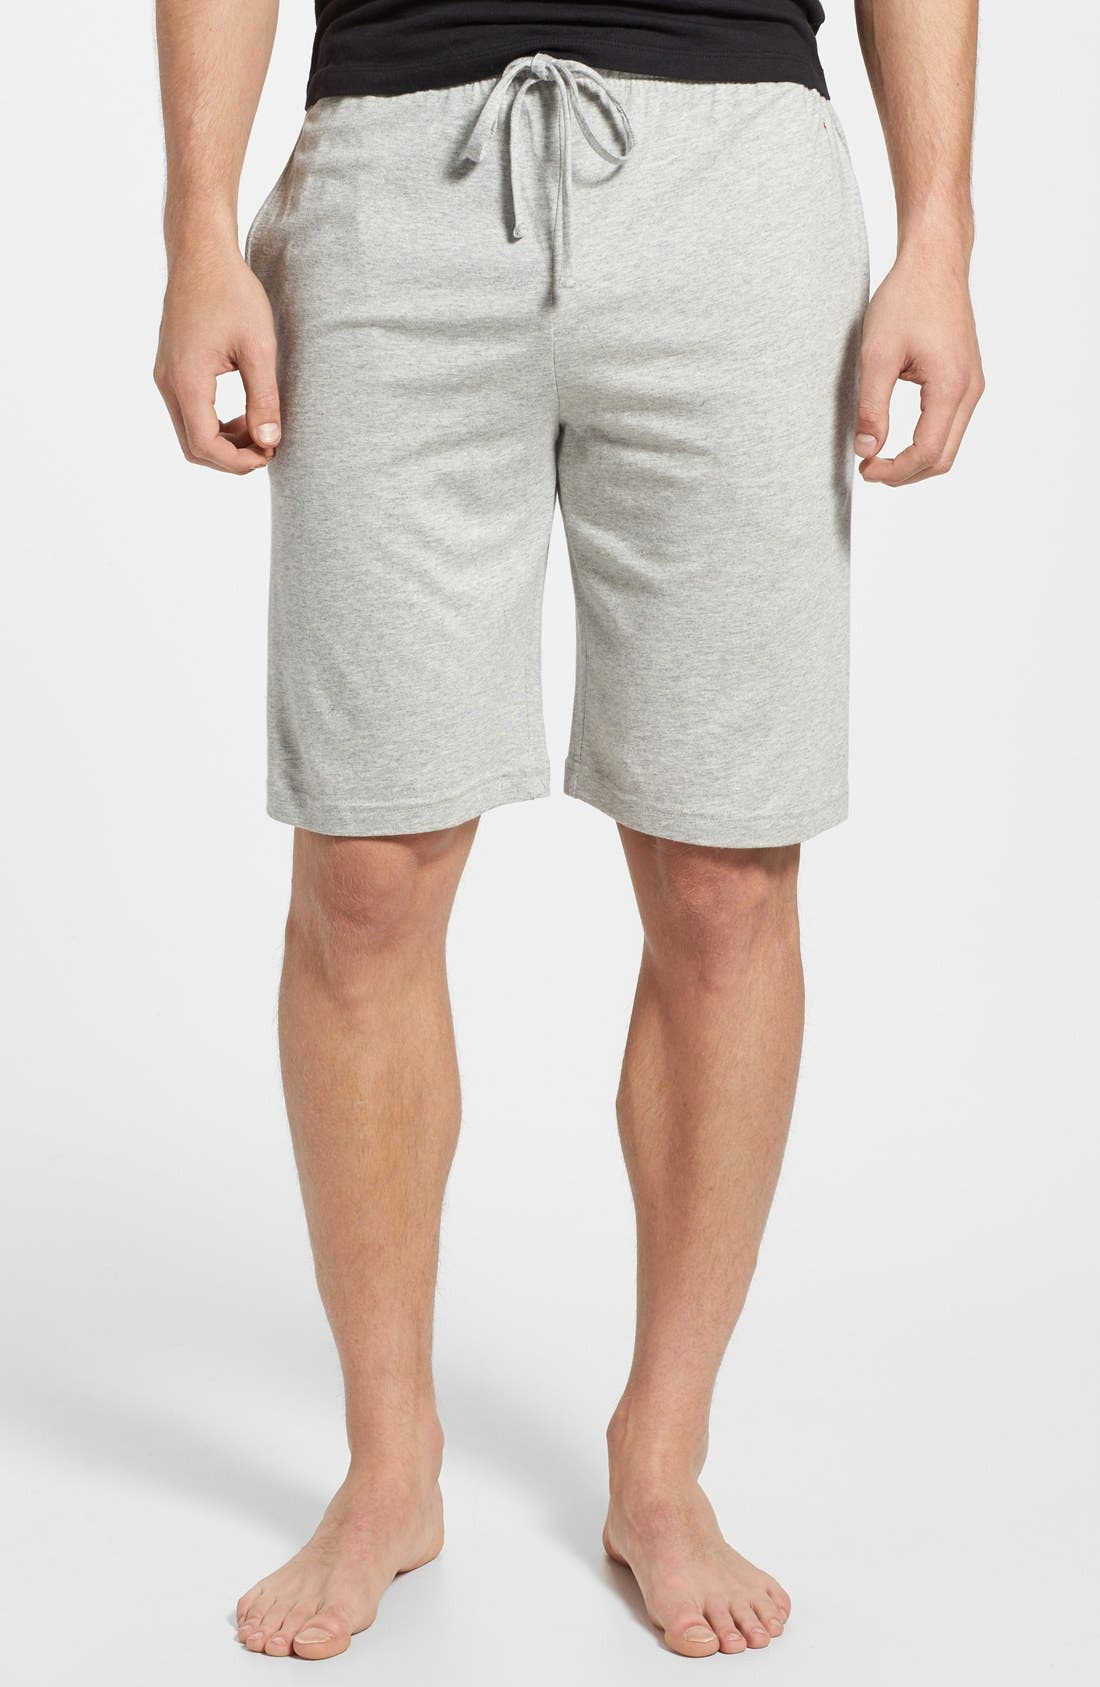 POLO RALPH LAUREN, Sleep Shorts, Main thumbnail 1, color, ANDOVER HEATHER